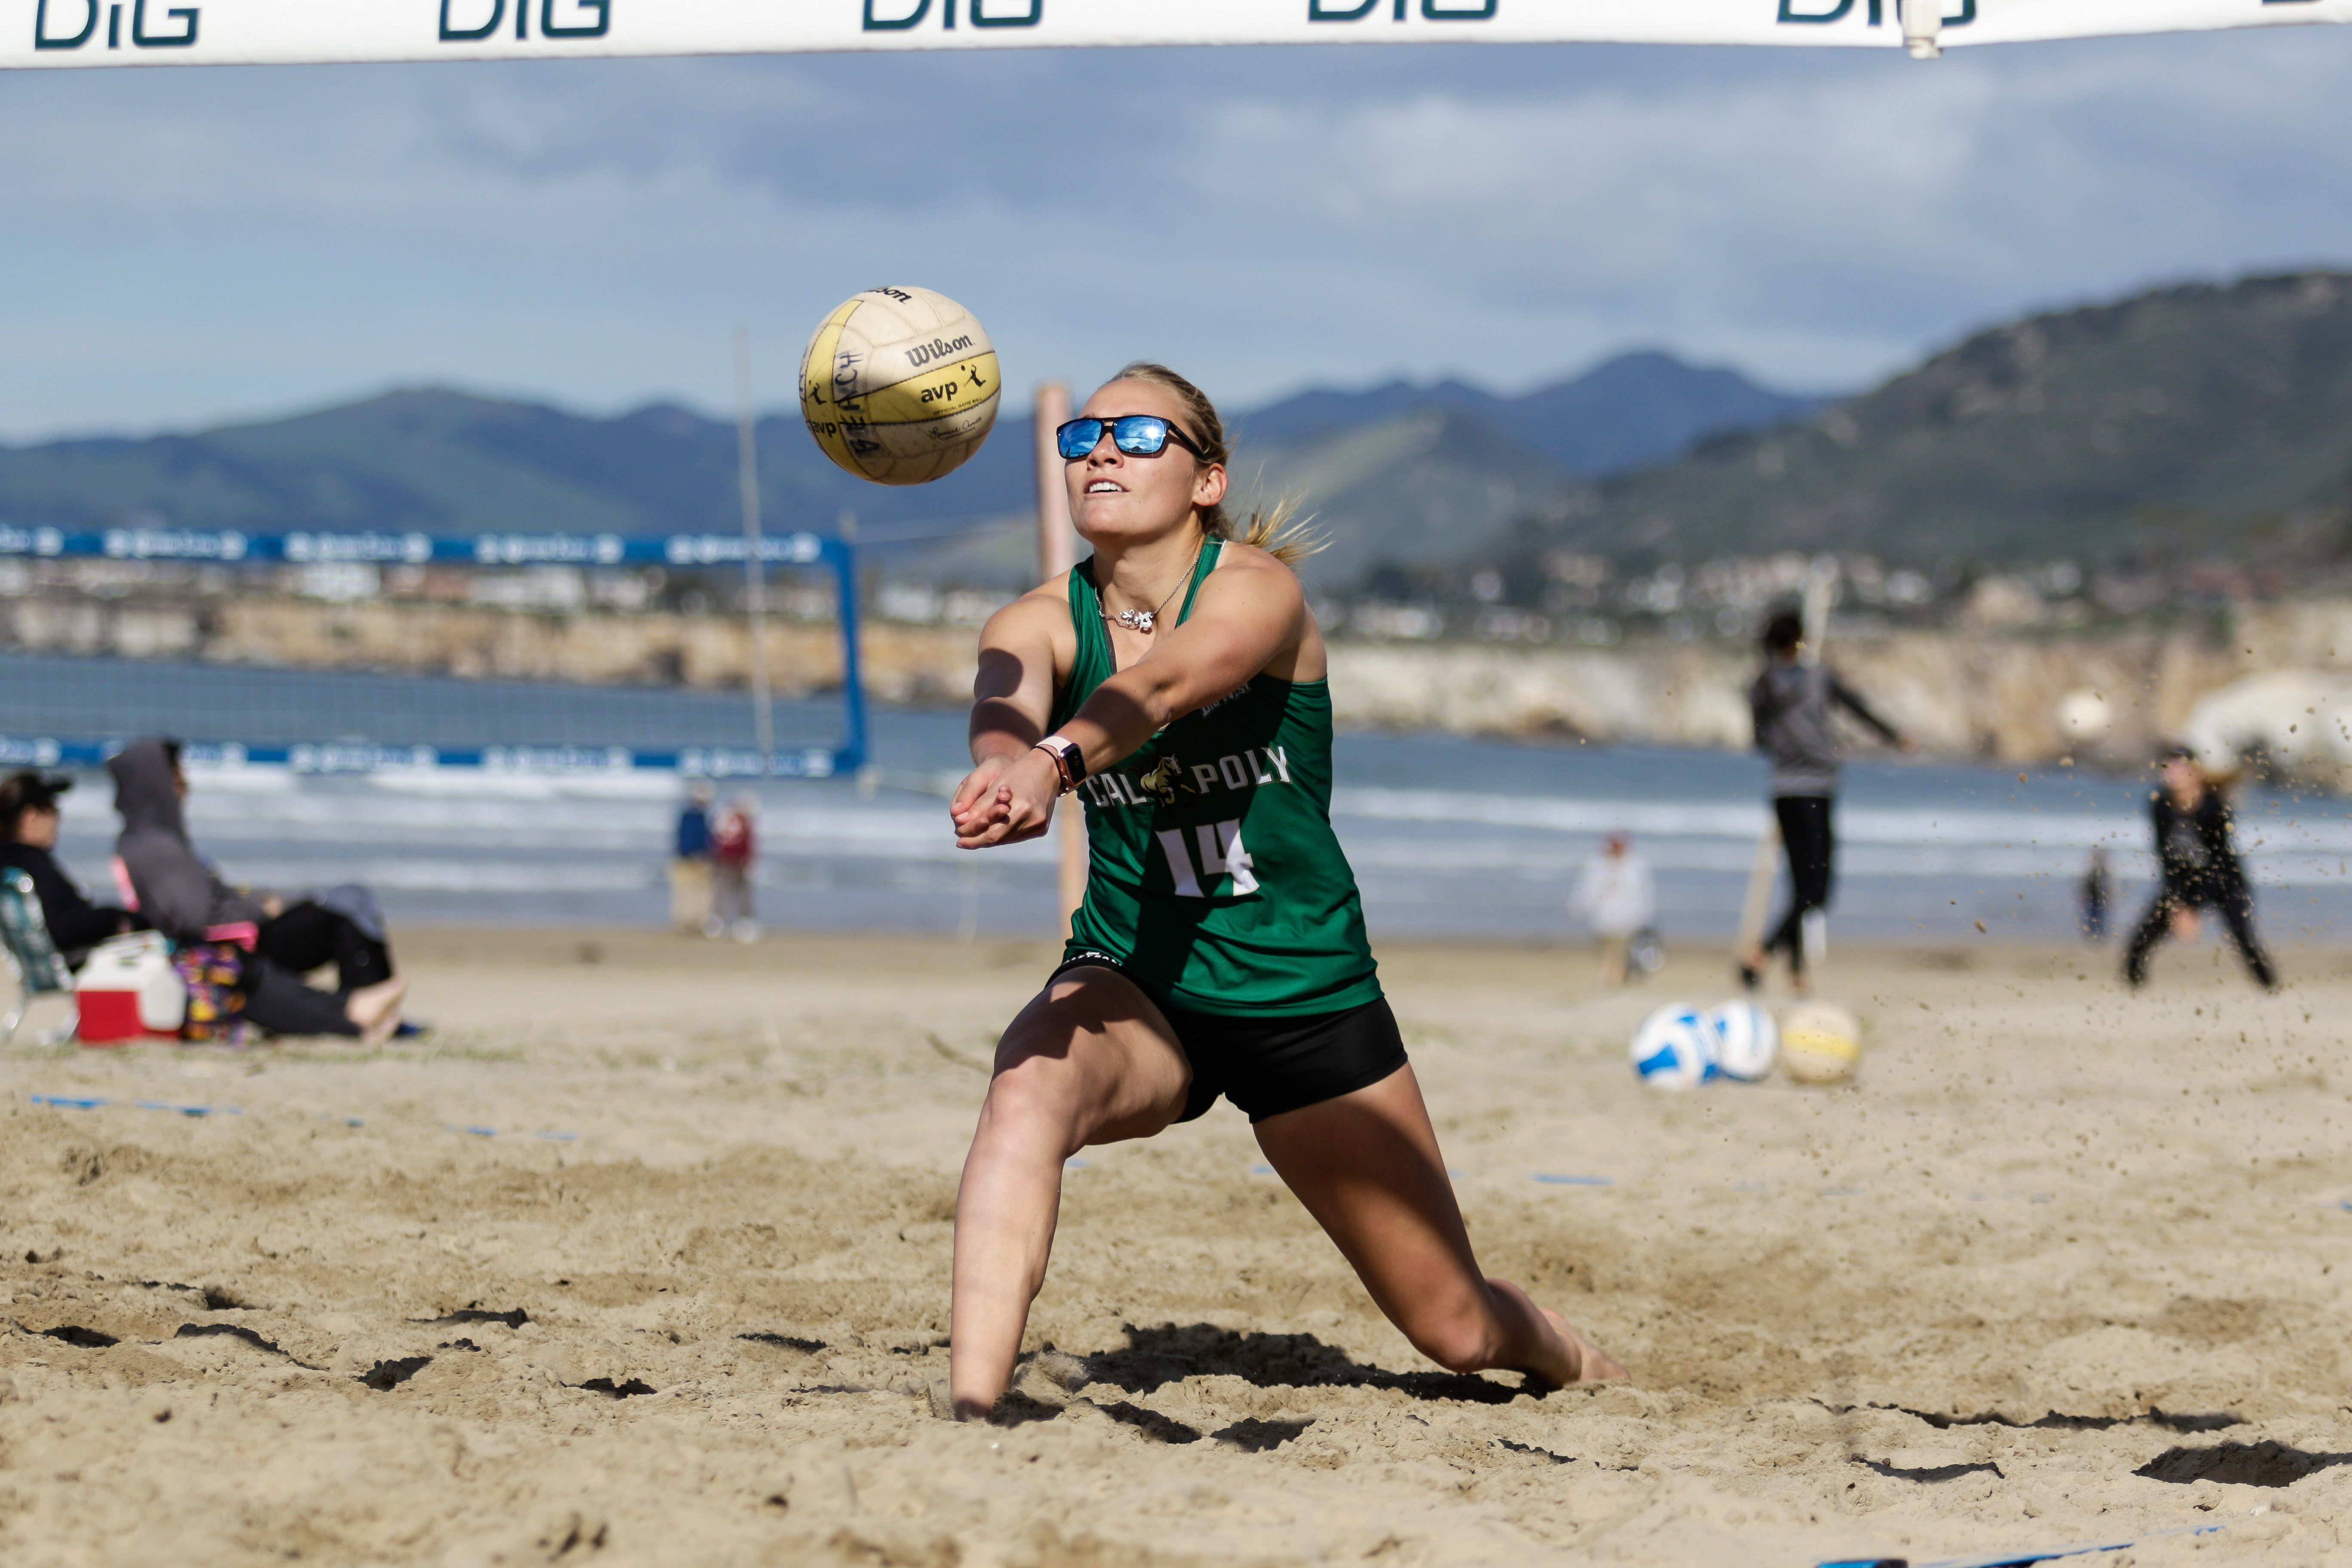 Beach Volleyball Player In 2020 Sports Photograph Beach Volleyball Volleyball Players